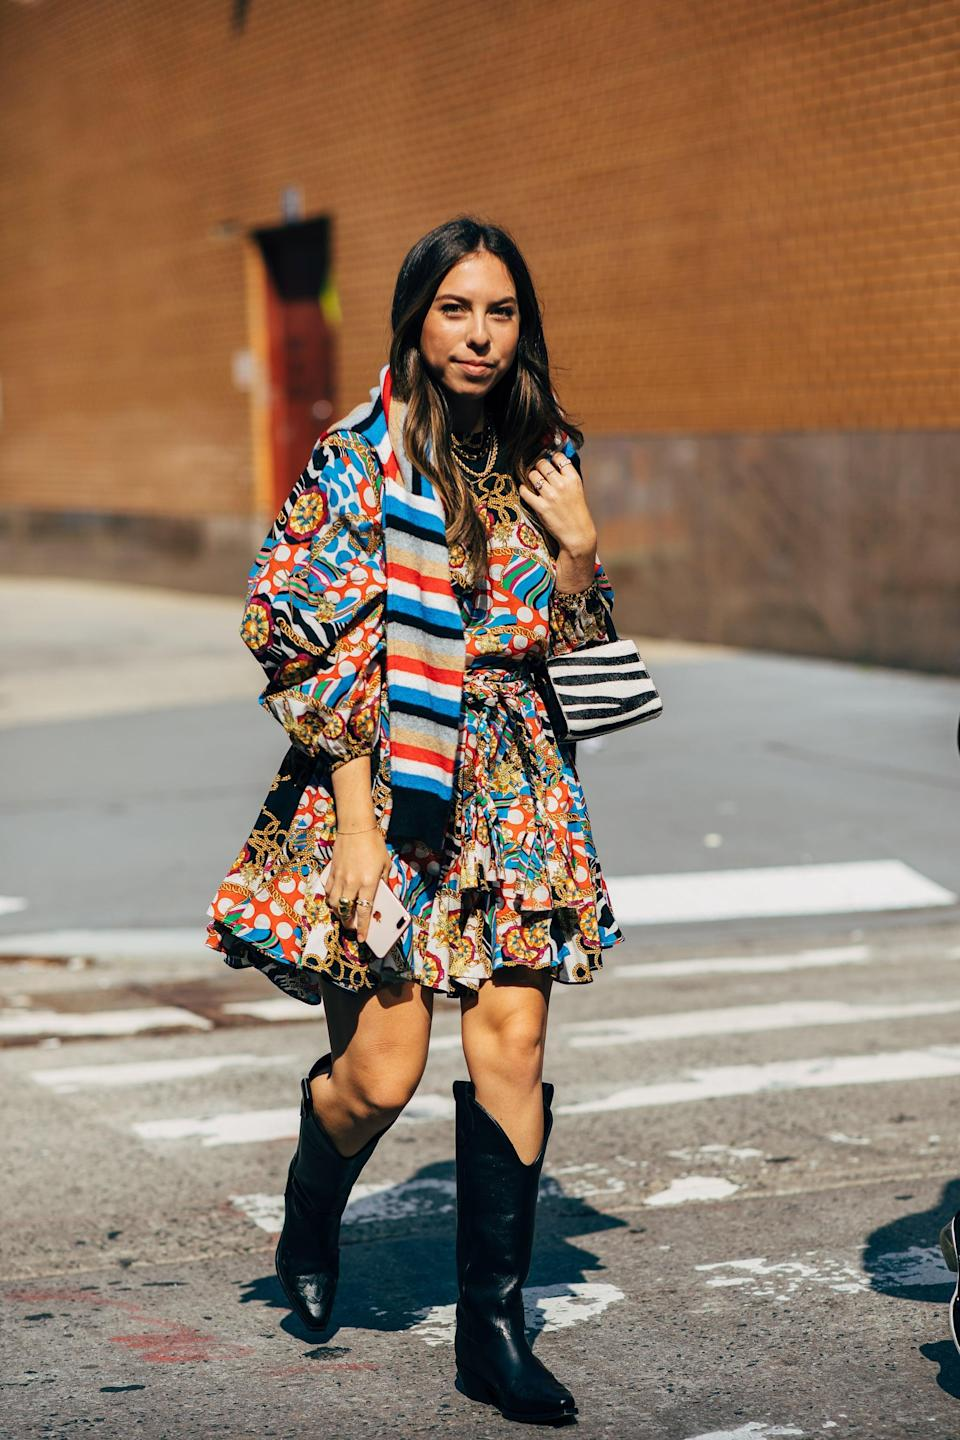 <p>Pair a flirty dress with sturdy boots that can take you anywhere.</p>